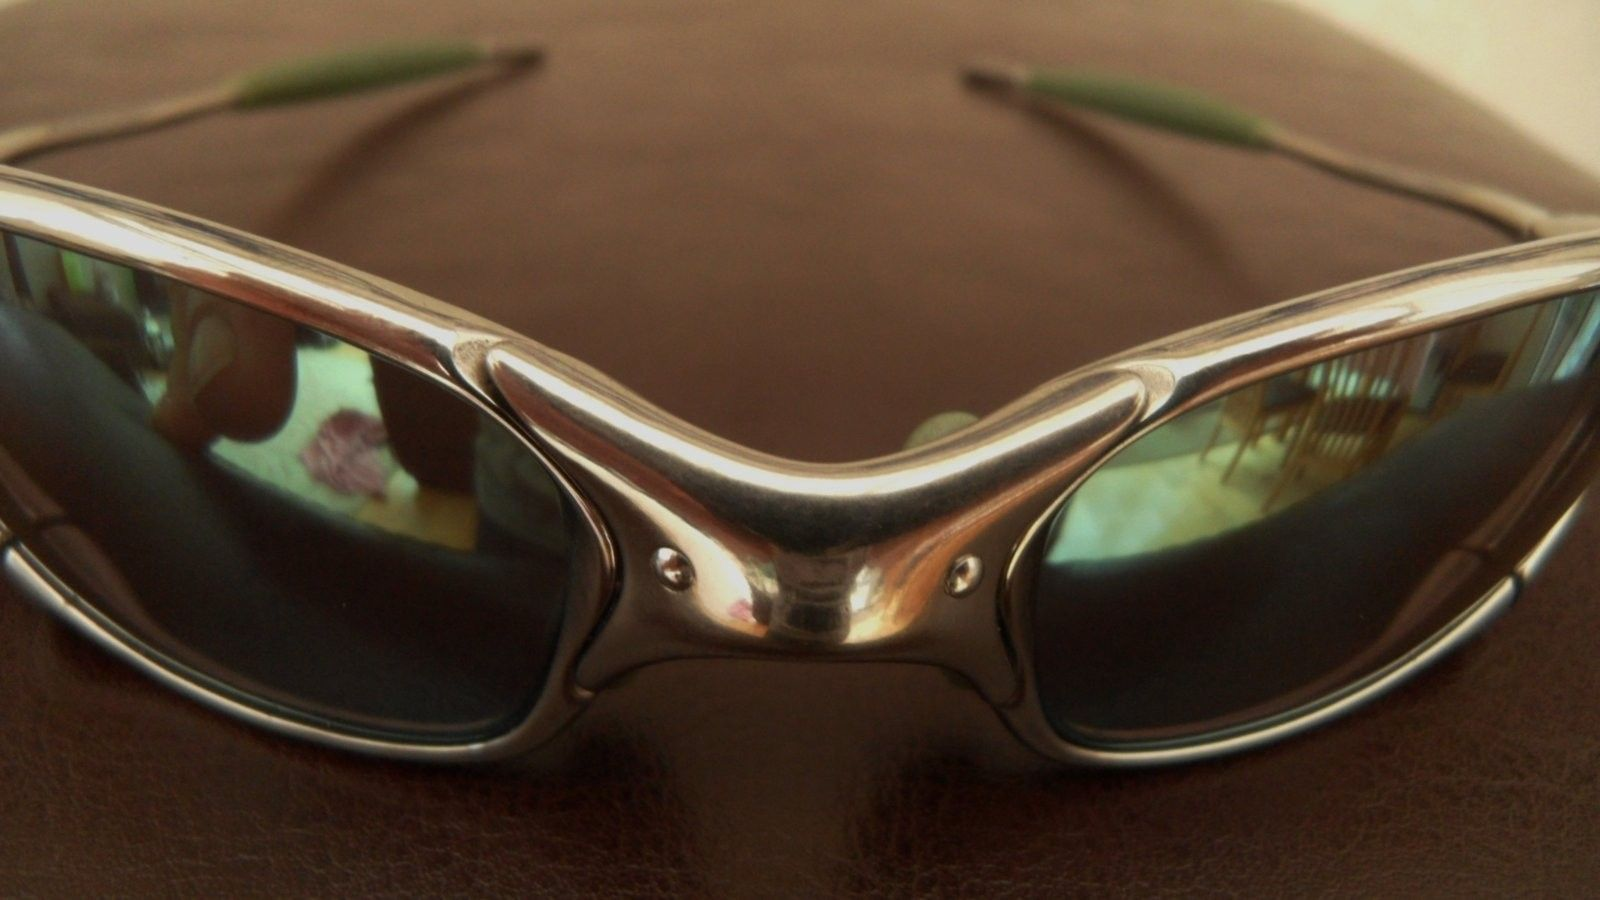 Ichiro Juliet. Polished frame with Emerald Slate Iridium £250/$360 - SAM_0004.JPG